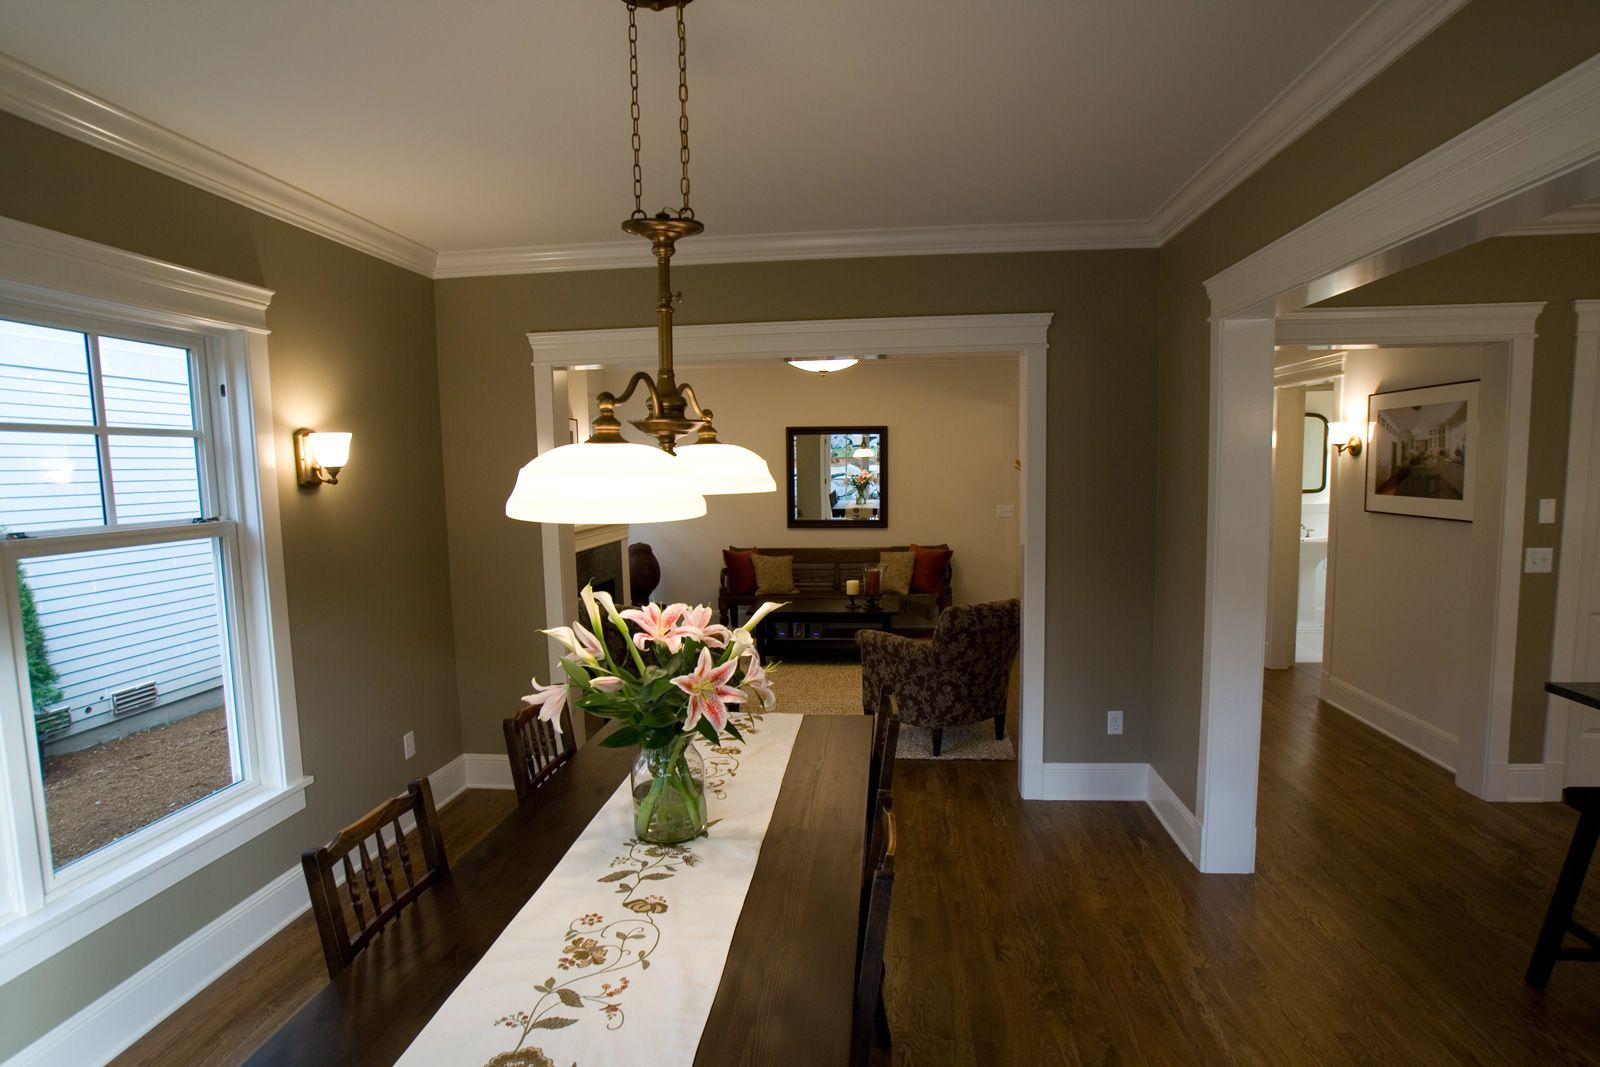 Home Design Ideas The Best Tips Choose Neutral Paint Colors For Living Room Bright Dining Rooms Dining Room Paint Colors Living Room Color Schemes